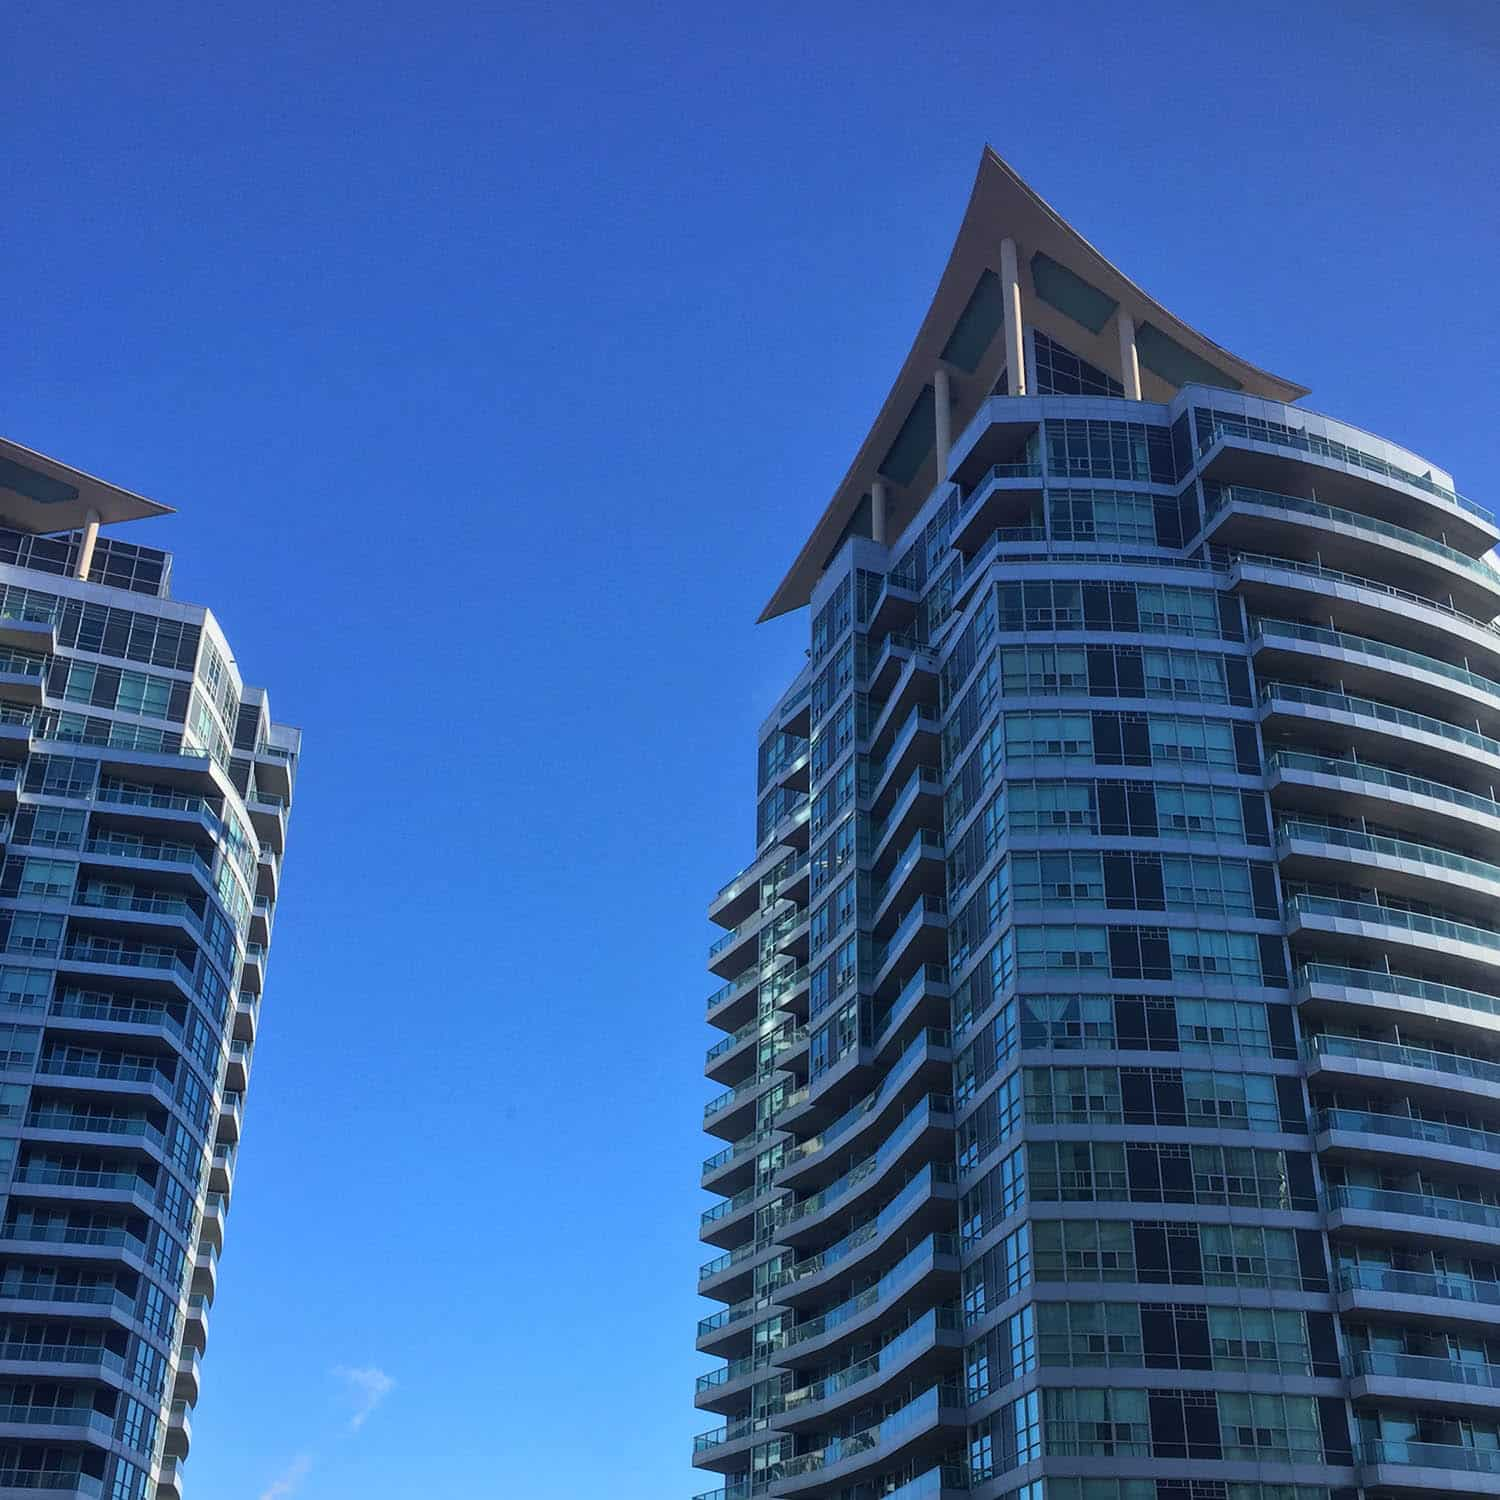 mississauga Sell My Mississauga Condo 2016 sell my square one condo list my square one condo spring 2016